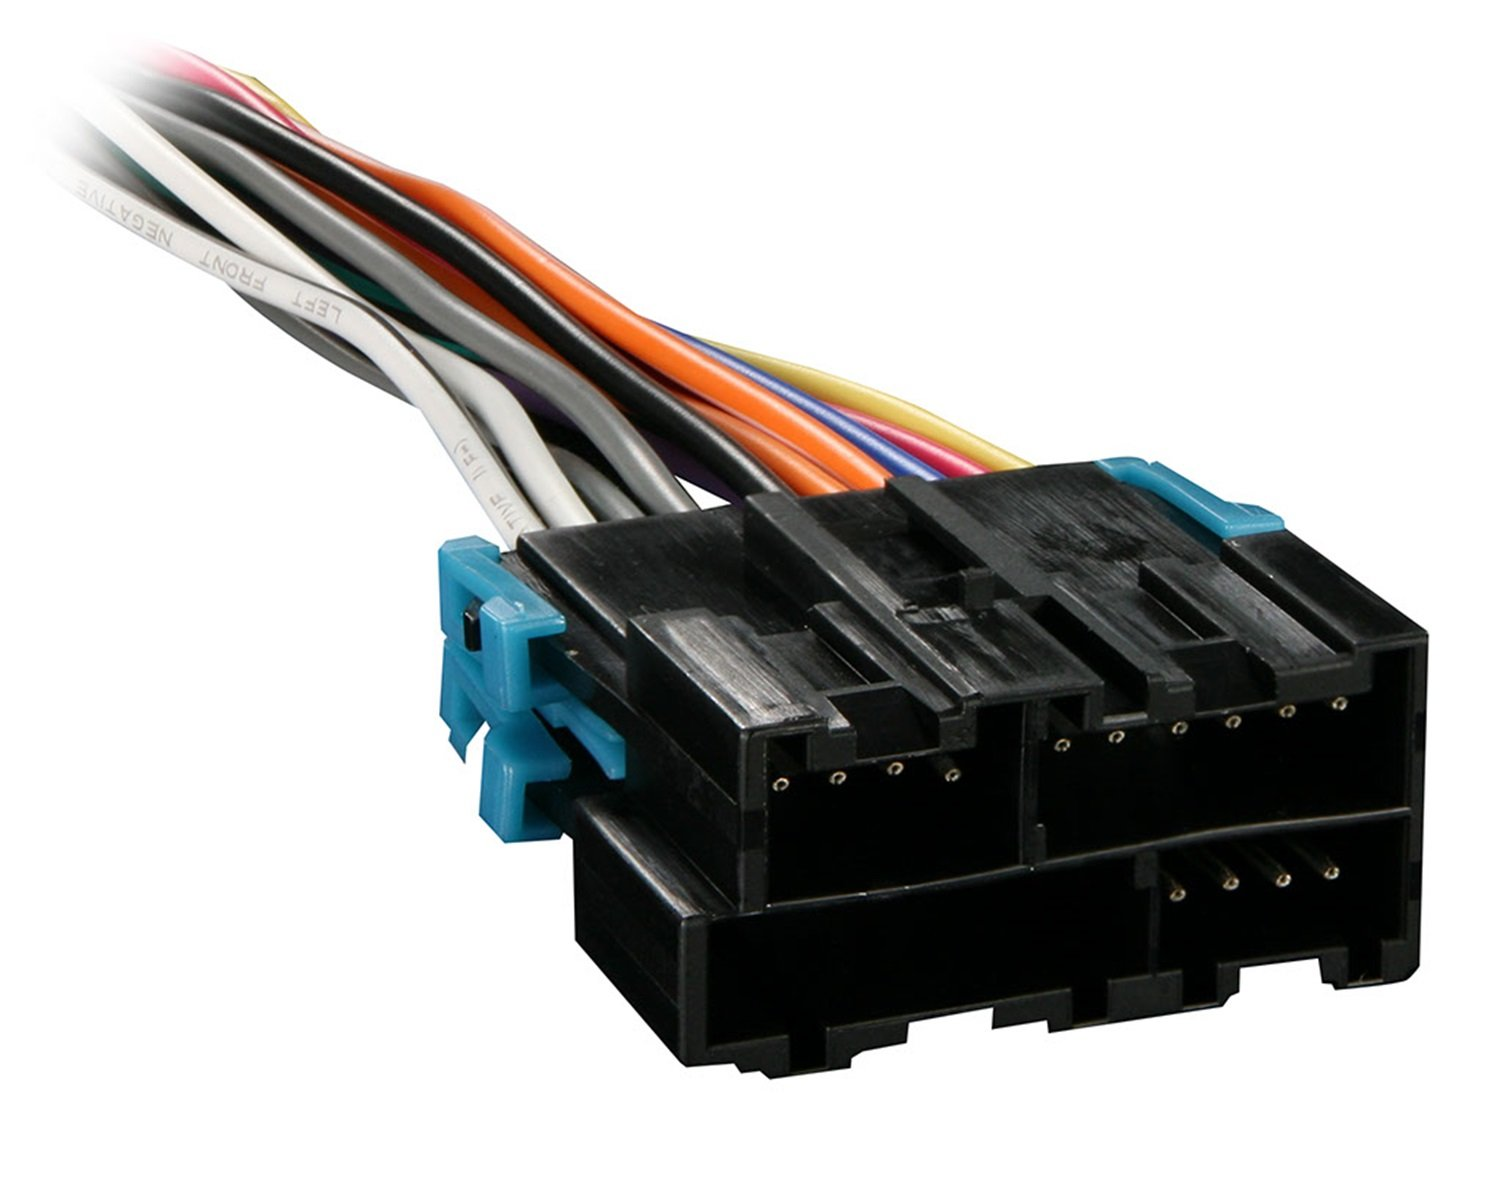 61 CwjZt1hL._SL1500_ radio wiring harnesses amazon com universal car stereo wiring harness at n-0.co